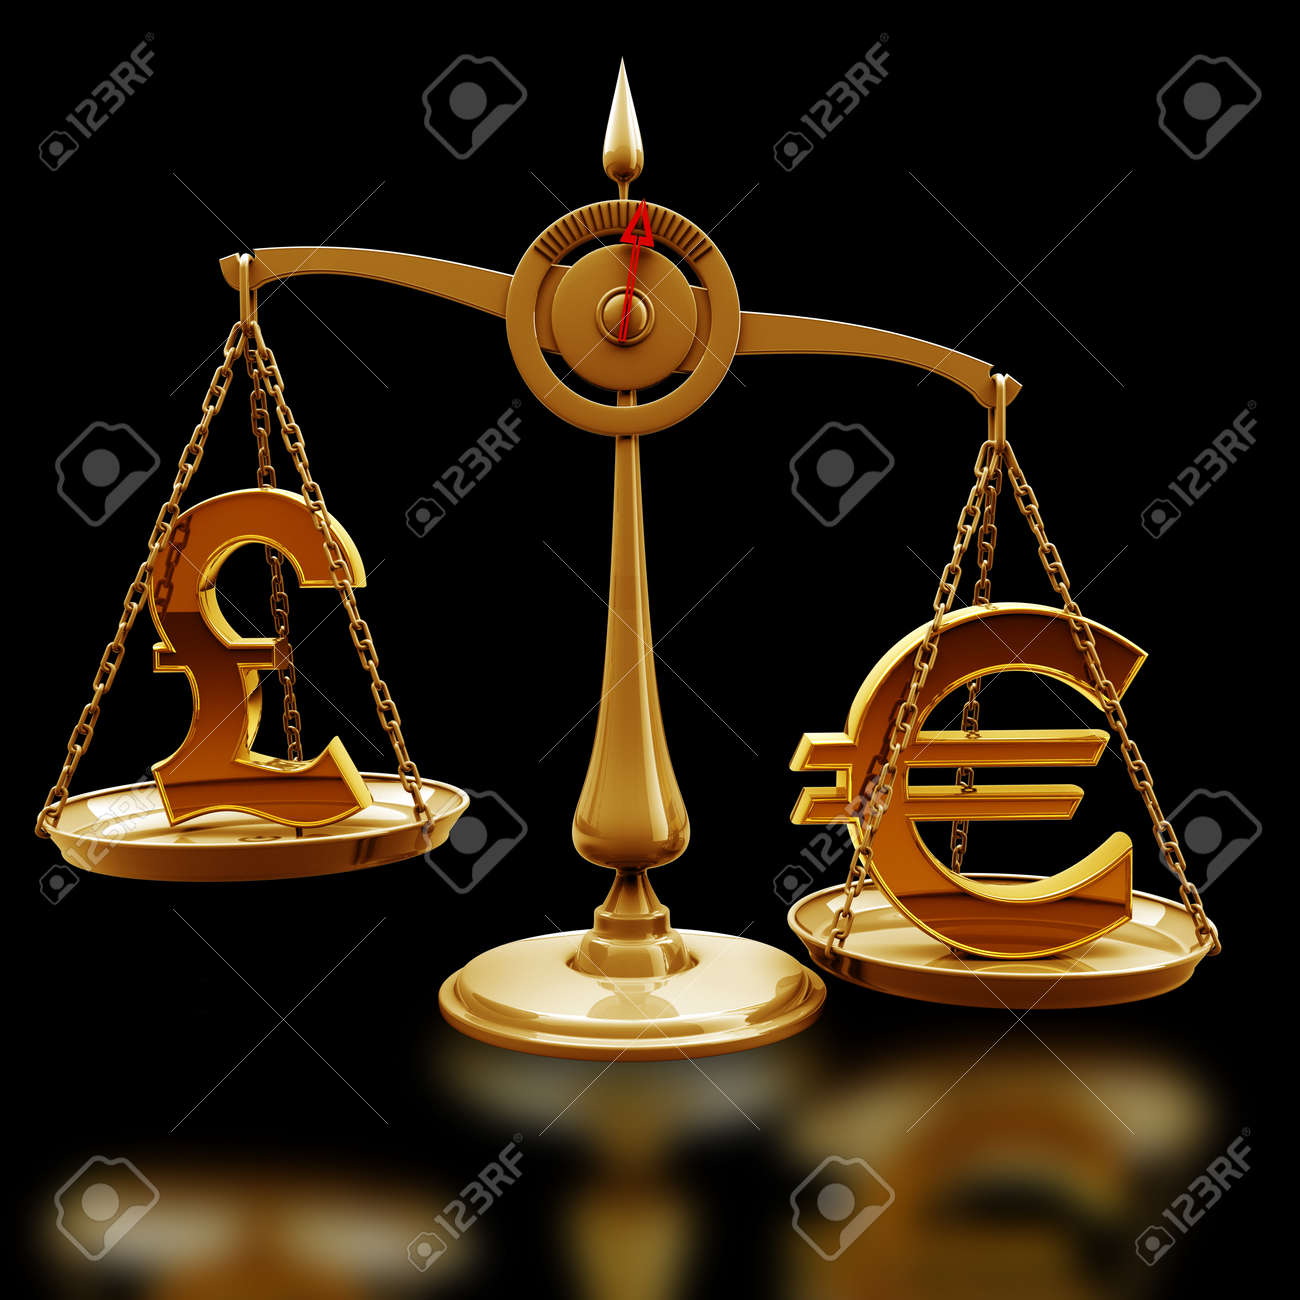 Golden scale with symbols of currencies euro vs british pound golden scale with symbols of currencies euro vs british pound isolated on black background high resolution biocorpaavc Images